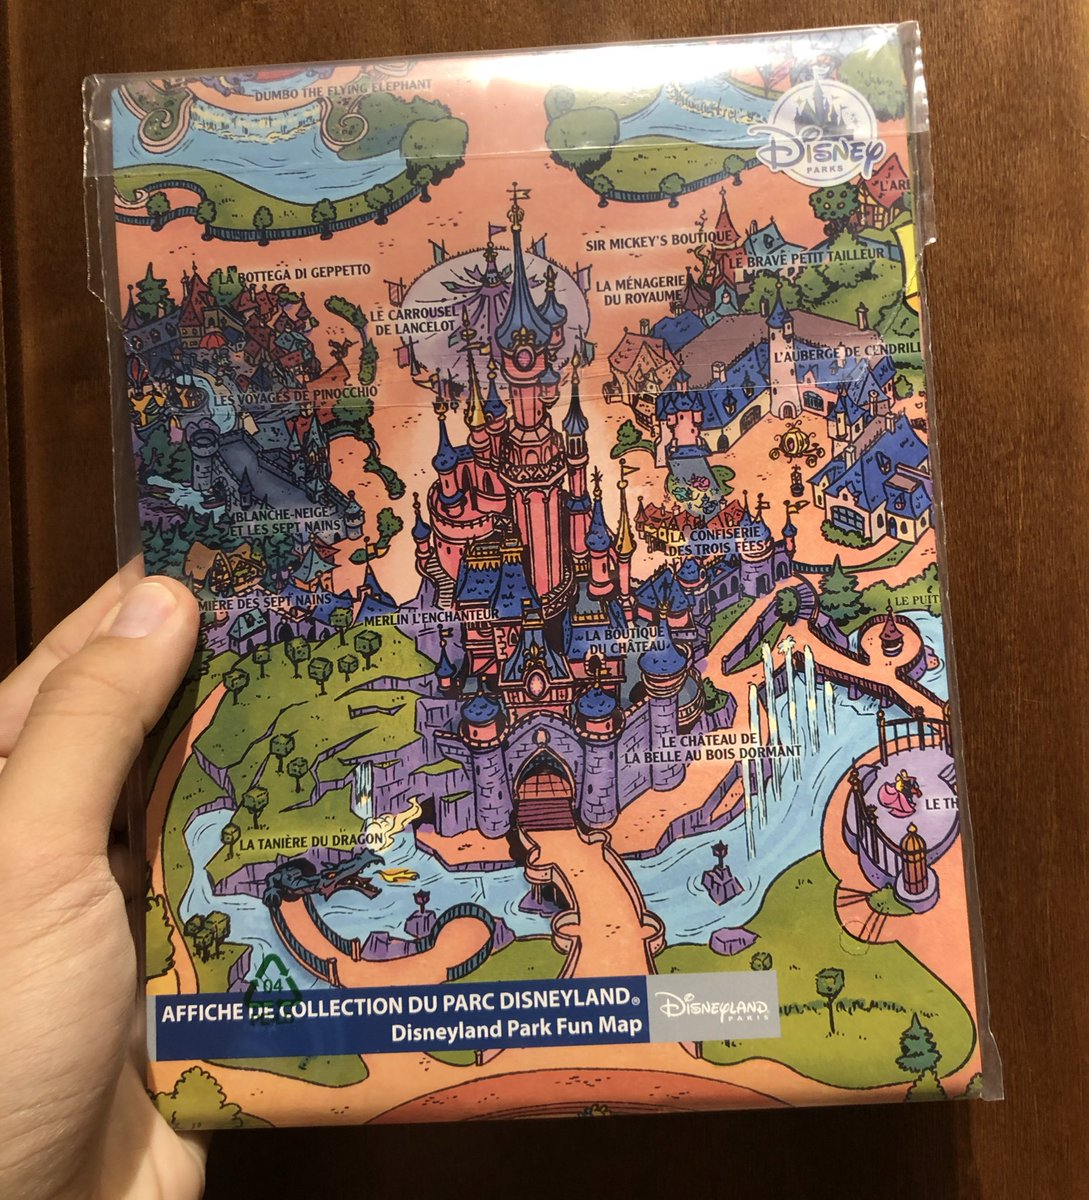 GIVEAWAY 5: Follow us, retweet and like this tweet to enter for a chance to win a GIANT Disneyland Paris fun map! <br>http://pic.twitter.com/ZoXonKgYn2